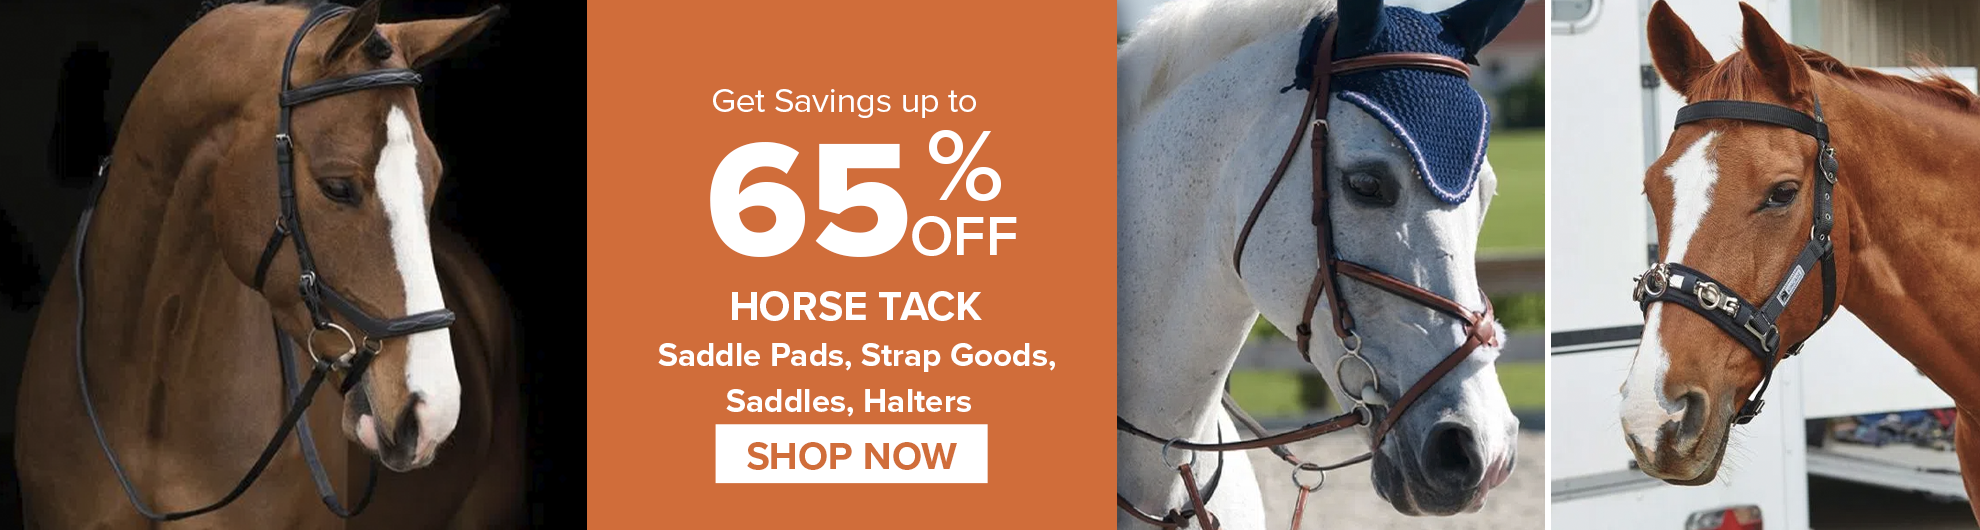 Shop for Tack on Tack of the Day